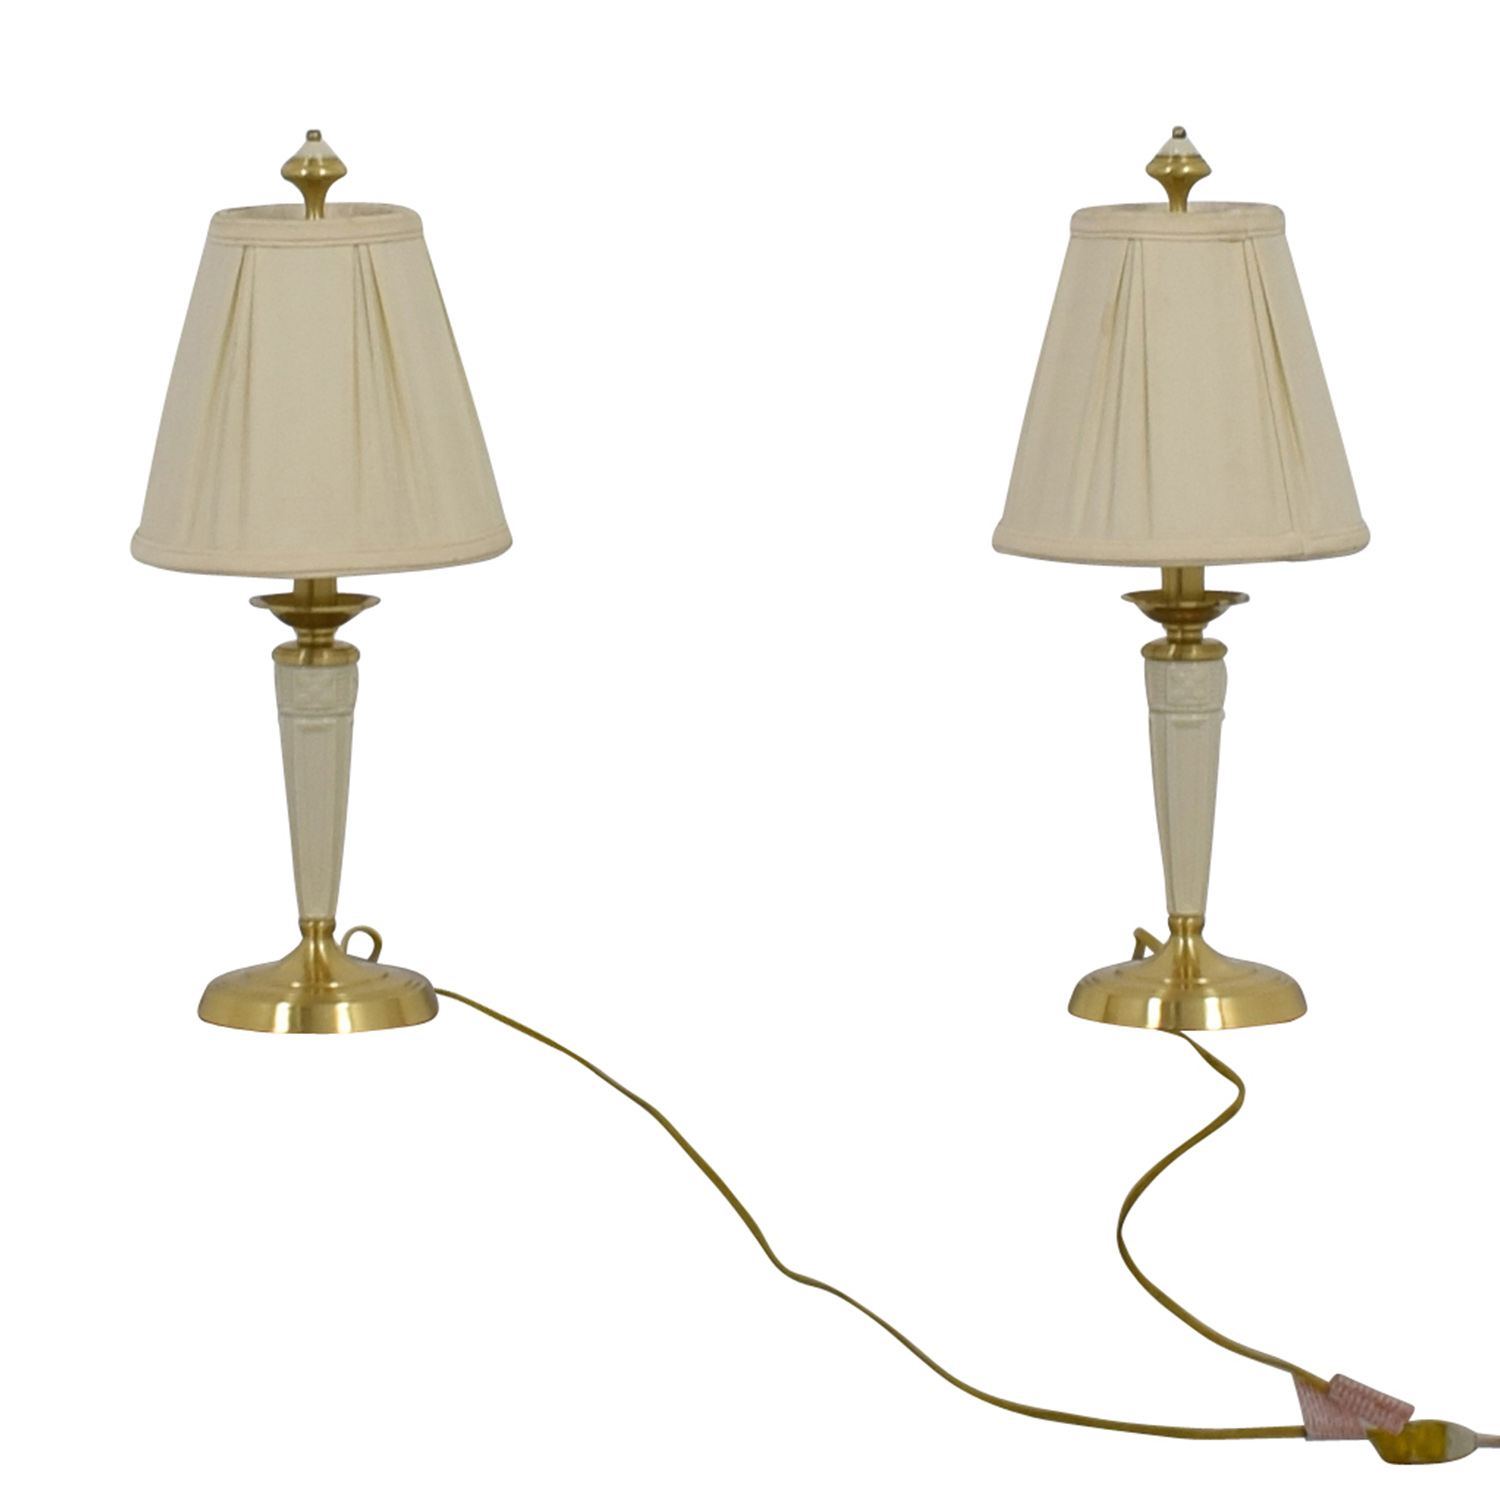 90 off lenox lenox white and gold base table lamps decor lenox white and gold base table lamps lamps aloadofball Images